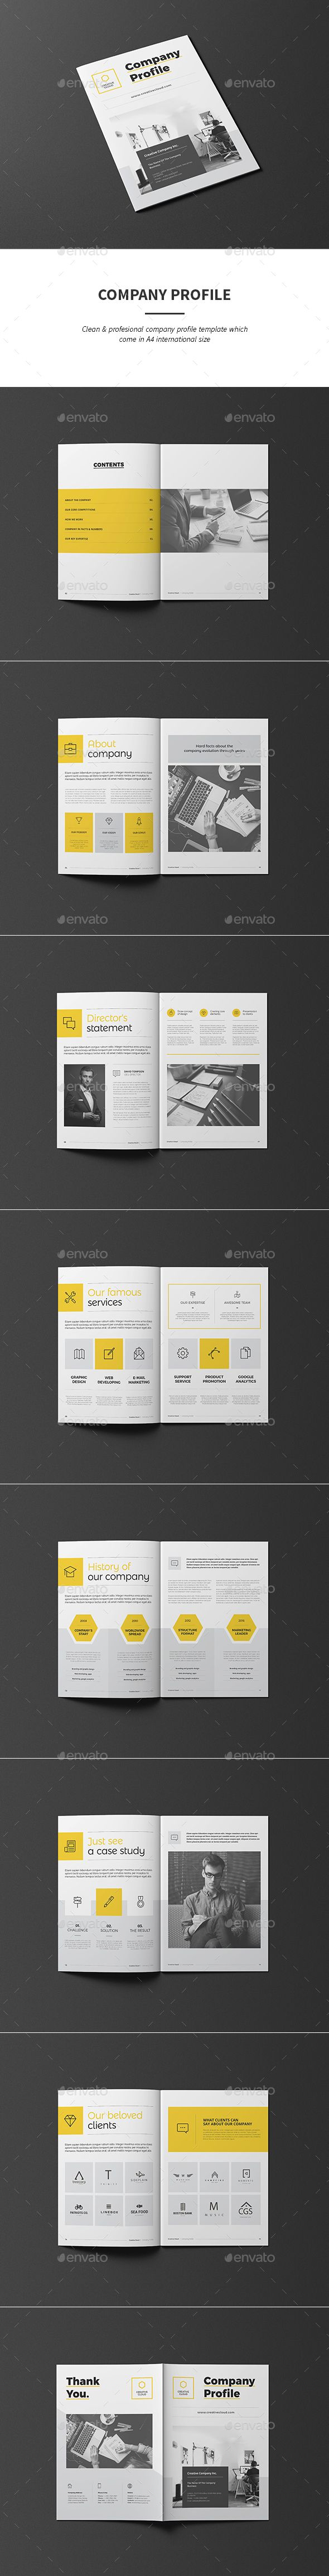 Company Profile — InDesign INDD #brief #identity • Download ➝ https://graphicriver.net/item/company-profile/18801829?ref=pxcr